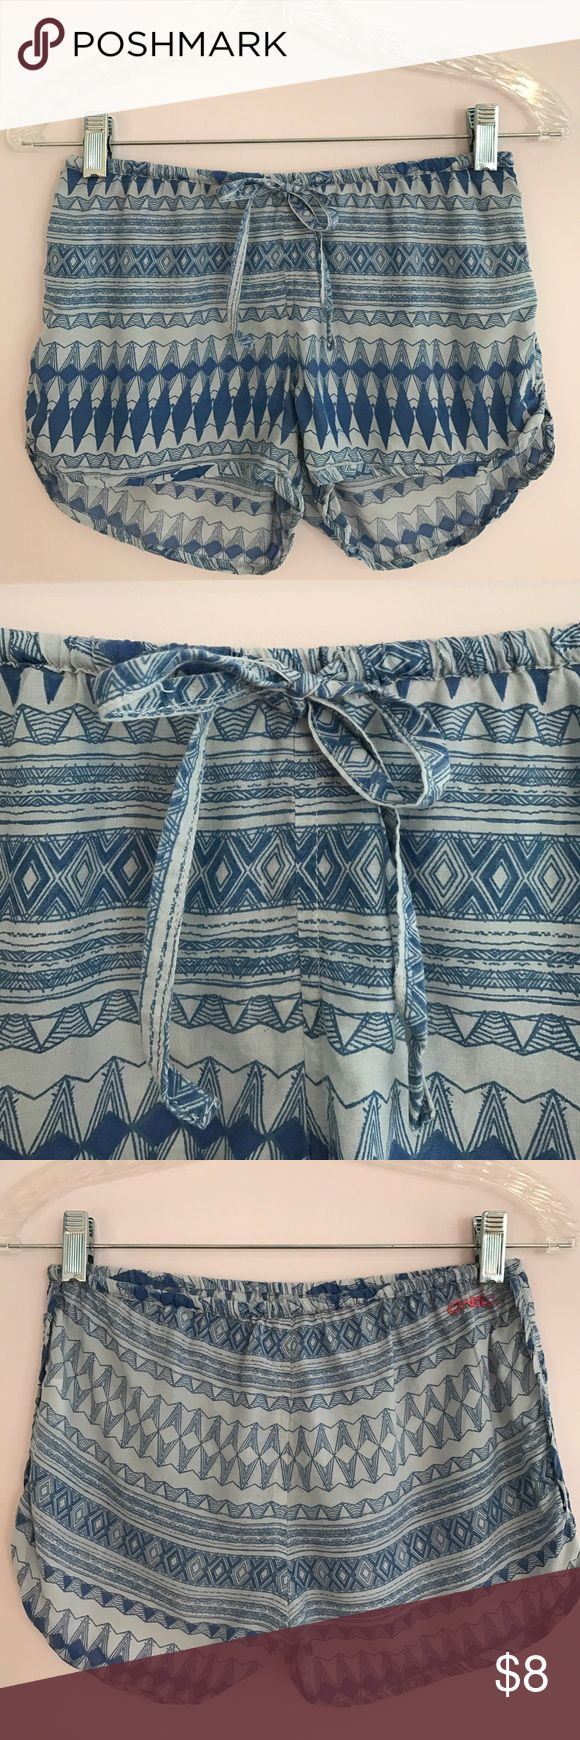 O'NEILL SOFT BLUE TRIBAL SHORTS Super cute and comfortable beachy shorts! Cute over a bikini or with a white top out on the town. Run a bit small but are very cute and somewhat stretchy! O'Neill Shorts